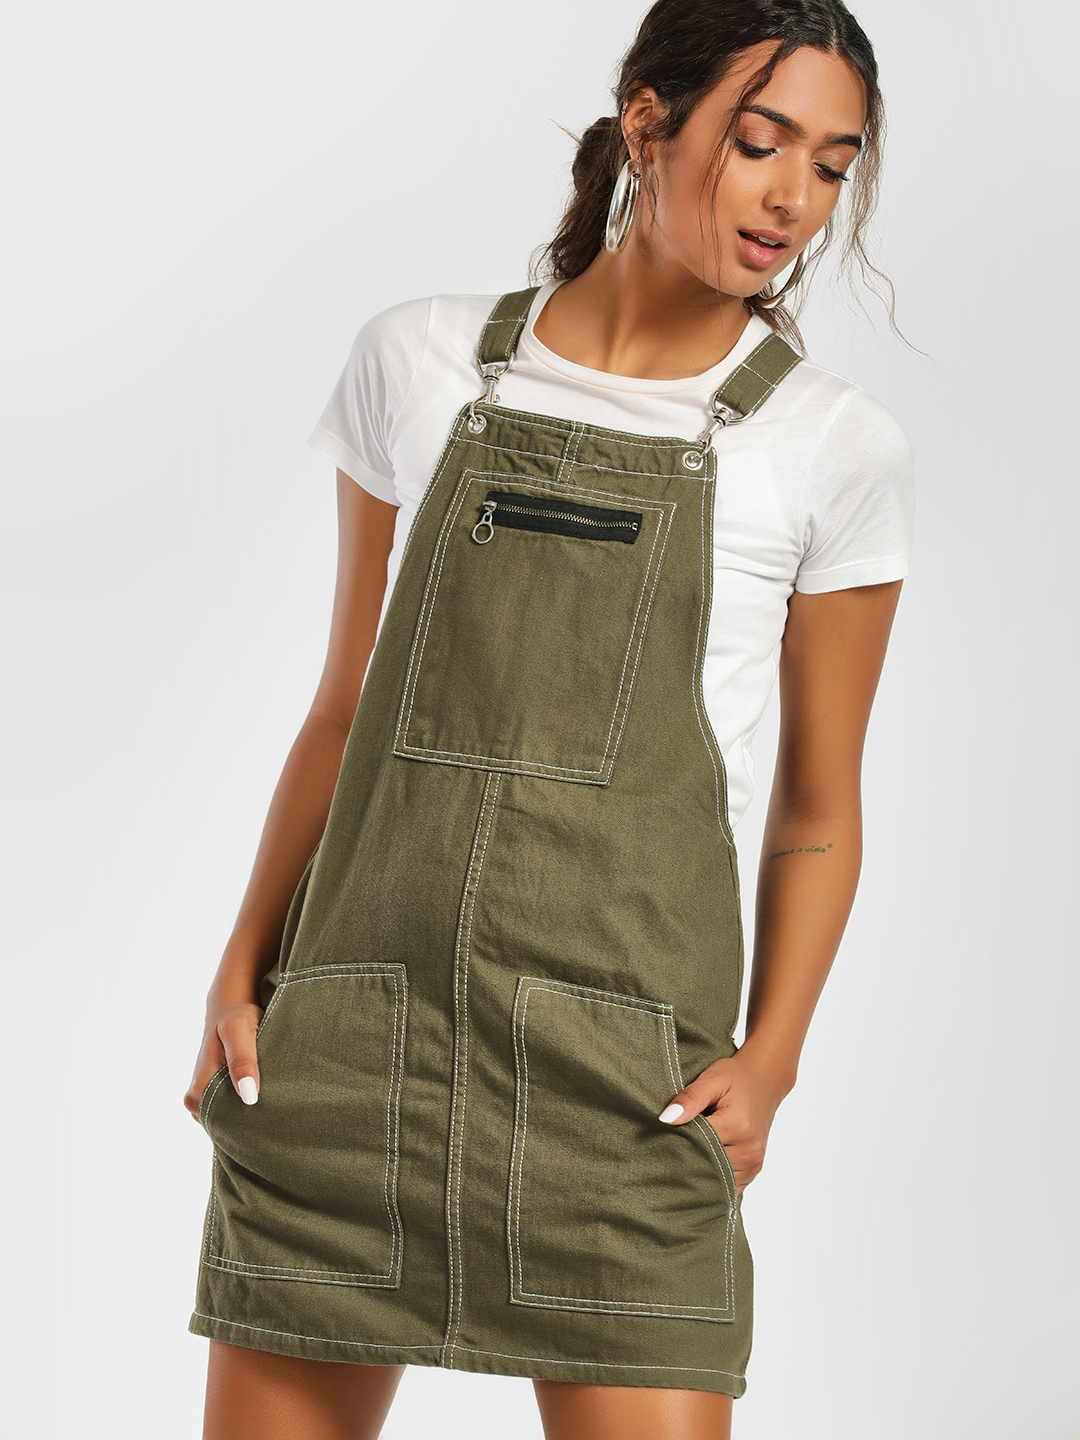 K Denim Green KOOVS Denim Pinafore Dungaree Dress 1